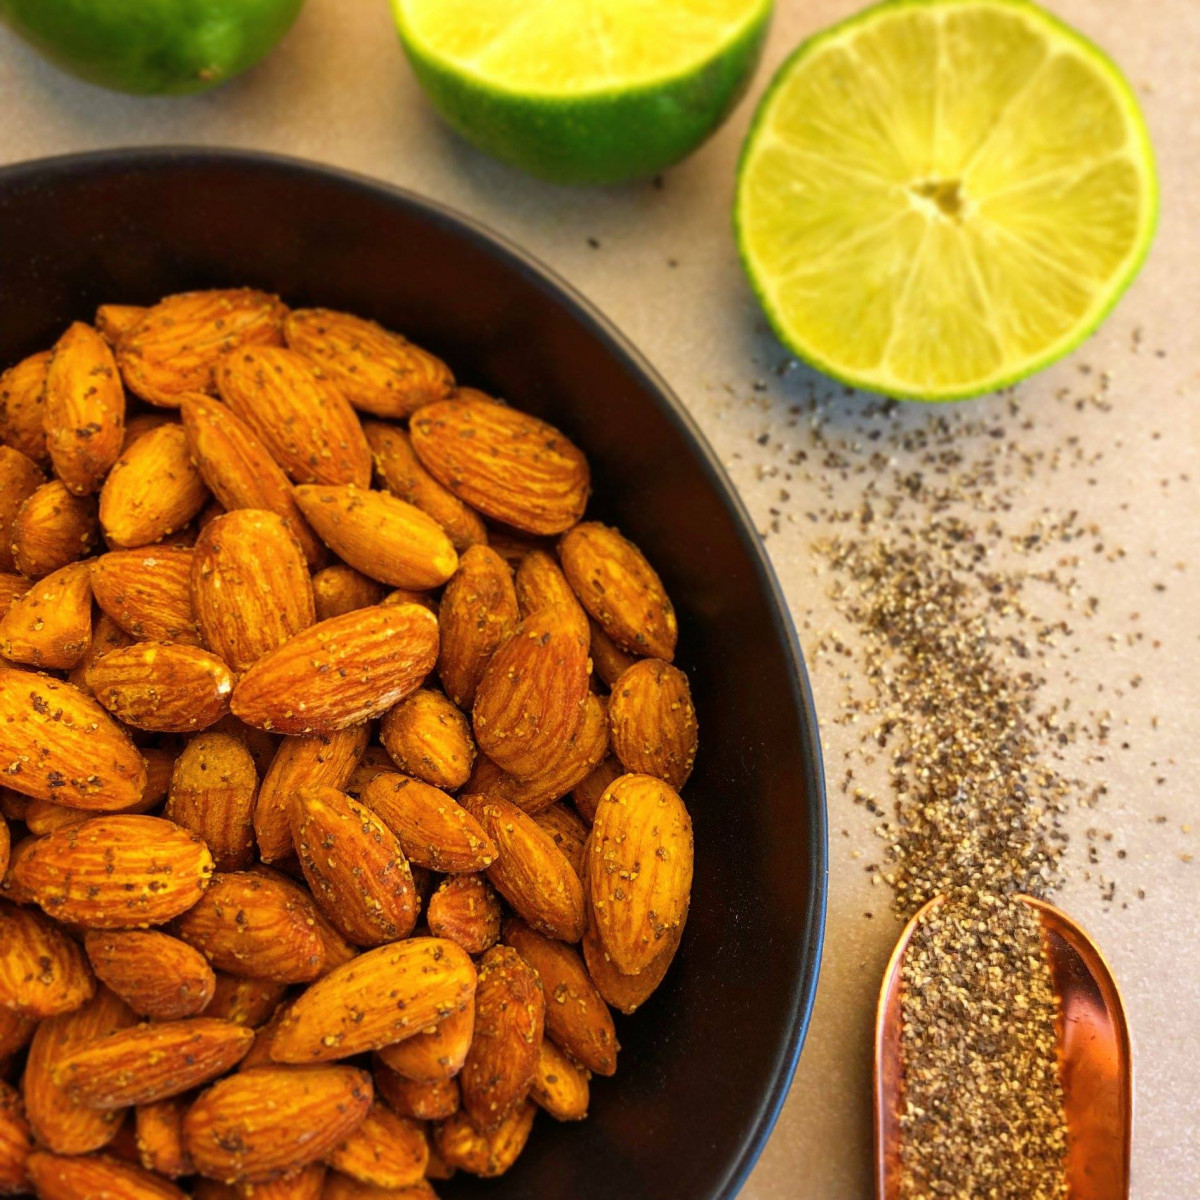 Ayoub's Roasted Almonds Vs Other Almonds